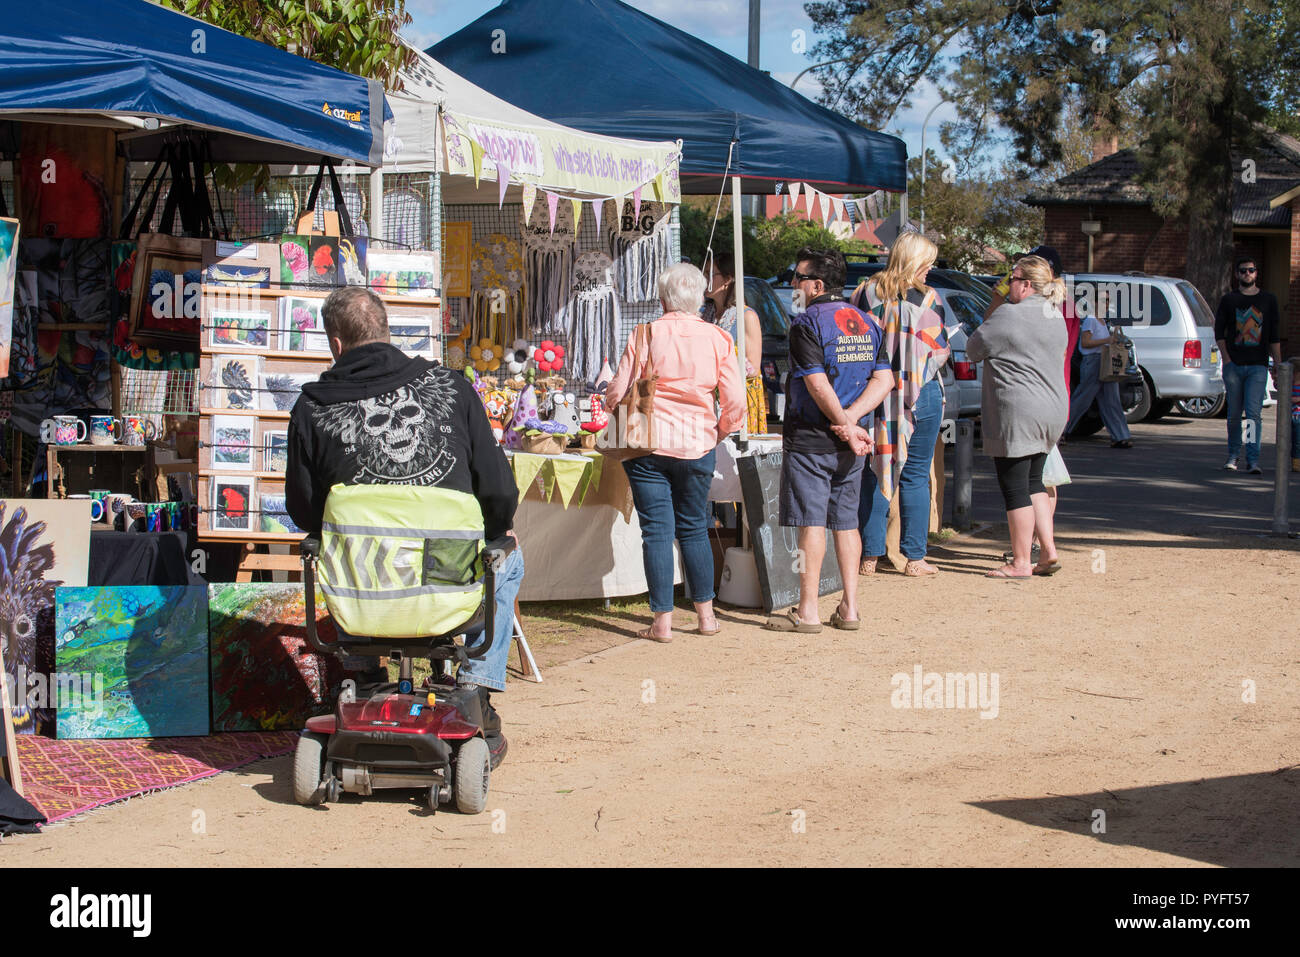 People browsing and shopping at the weekend market at Richmond in Sydney Australia's western suburbs - Stock Image